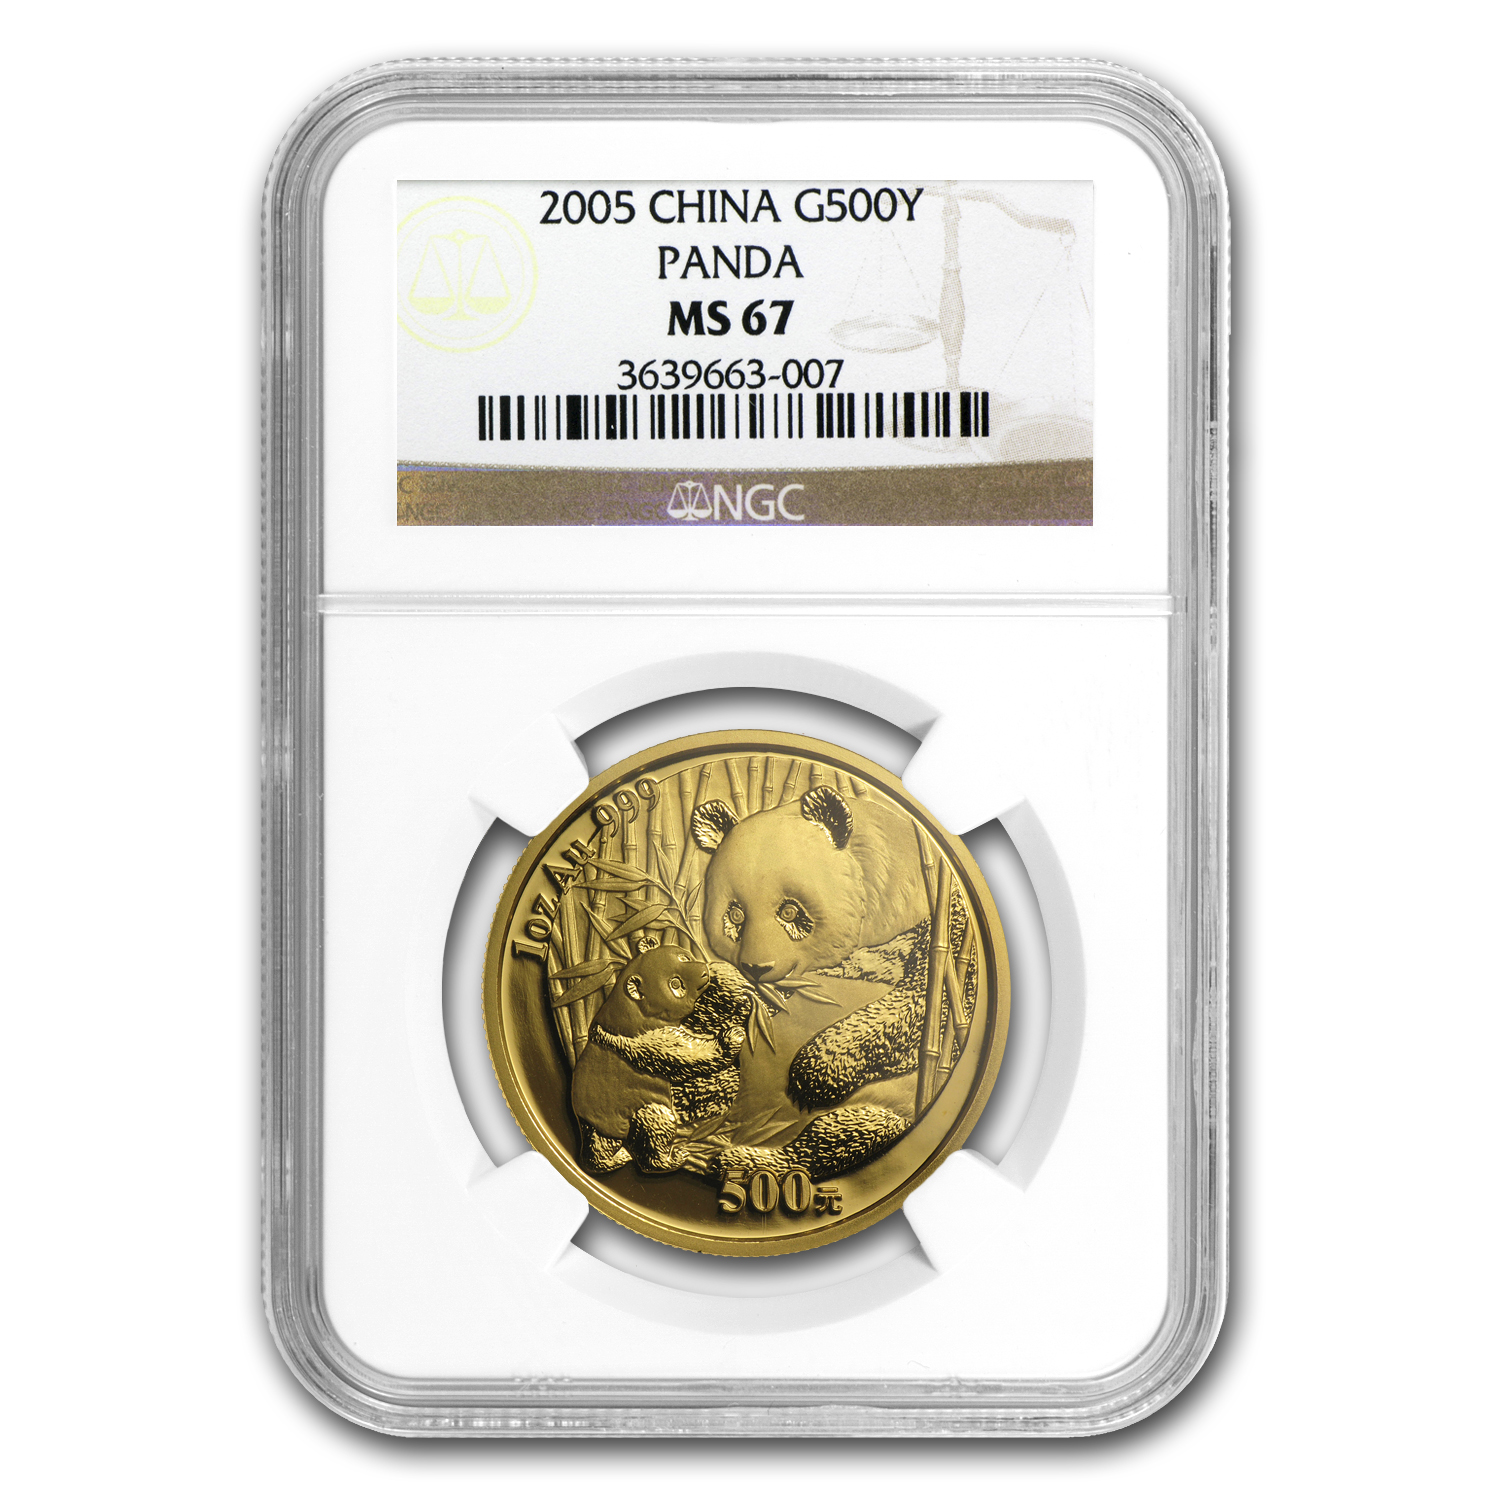 2005 1 oz Gold Chinese Panda MS-67 NGC